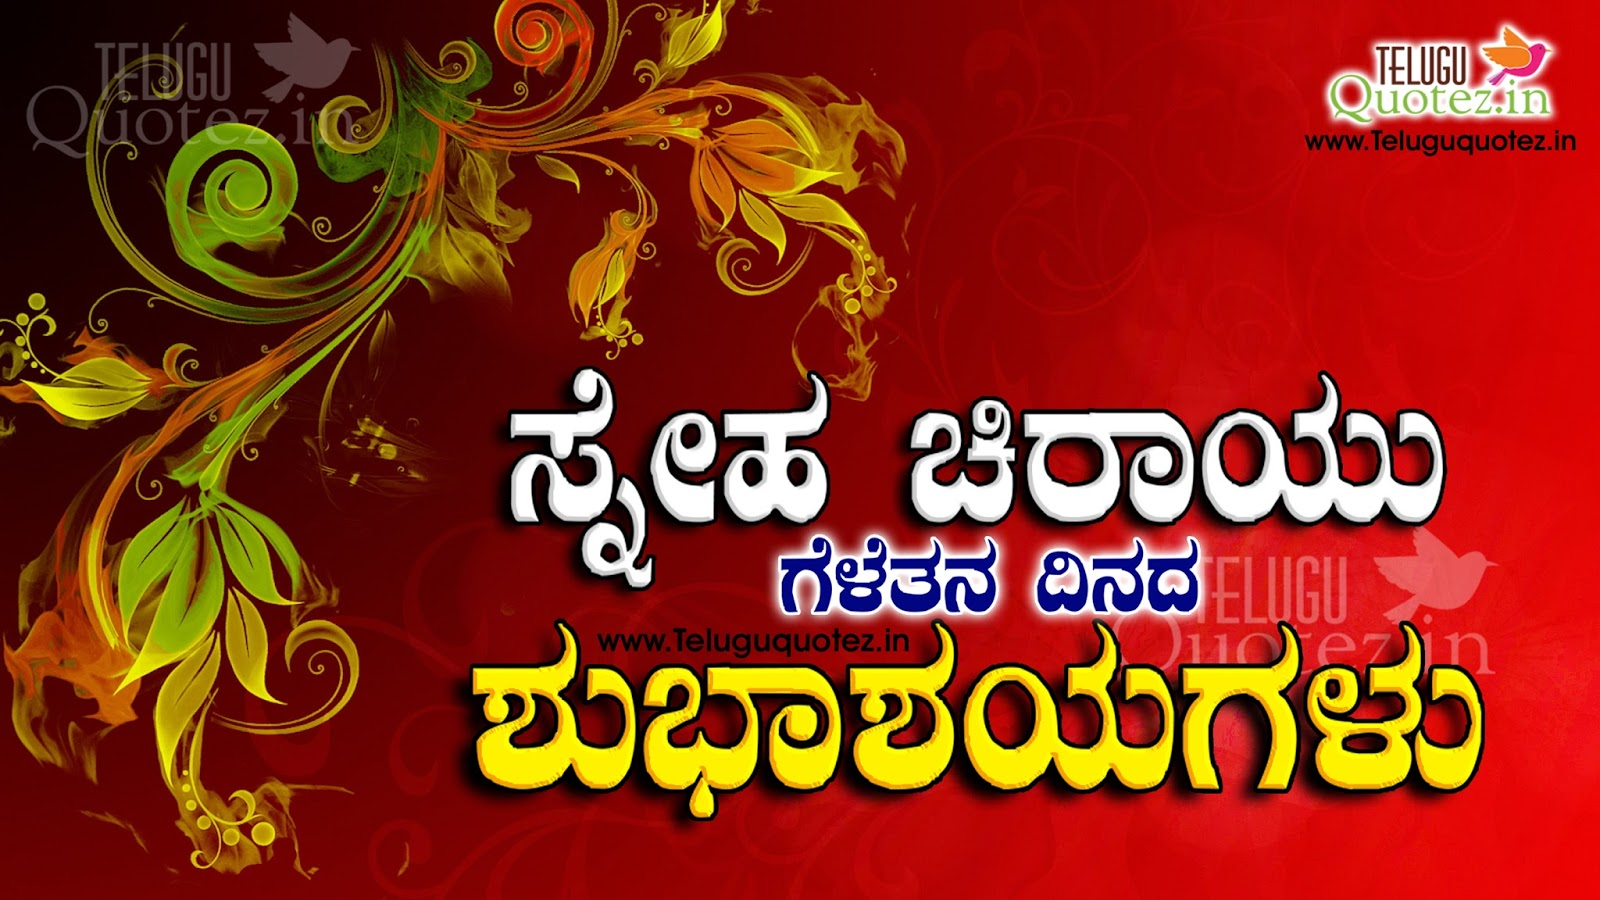 Anniversary messages in kannada ~ Kannada happy friendship day kavanagal quotes teluguquotez